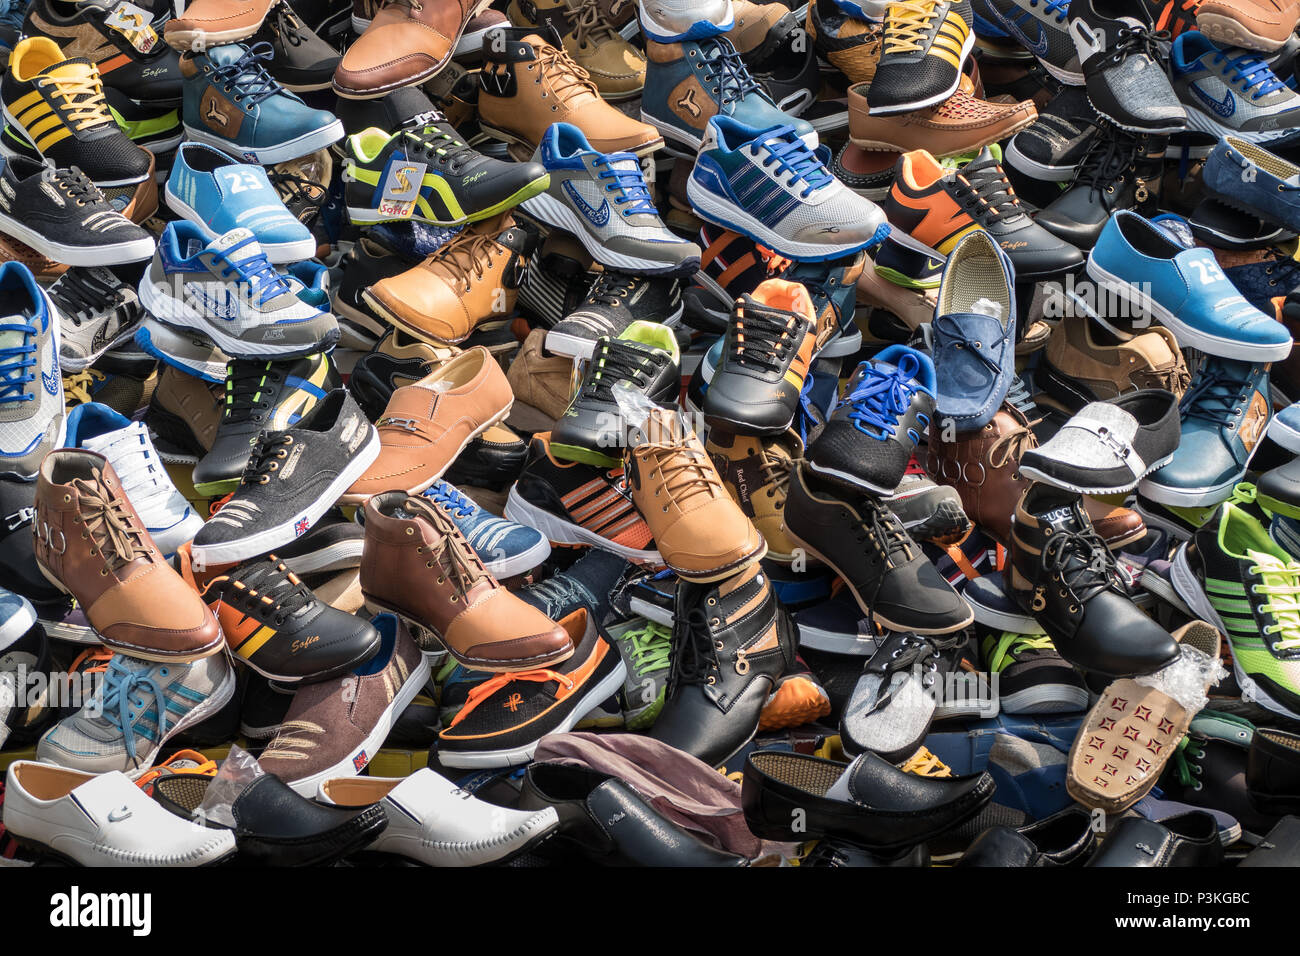 Large selection of footwear on an Indian market stall - Stock Image